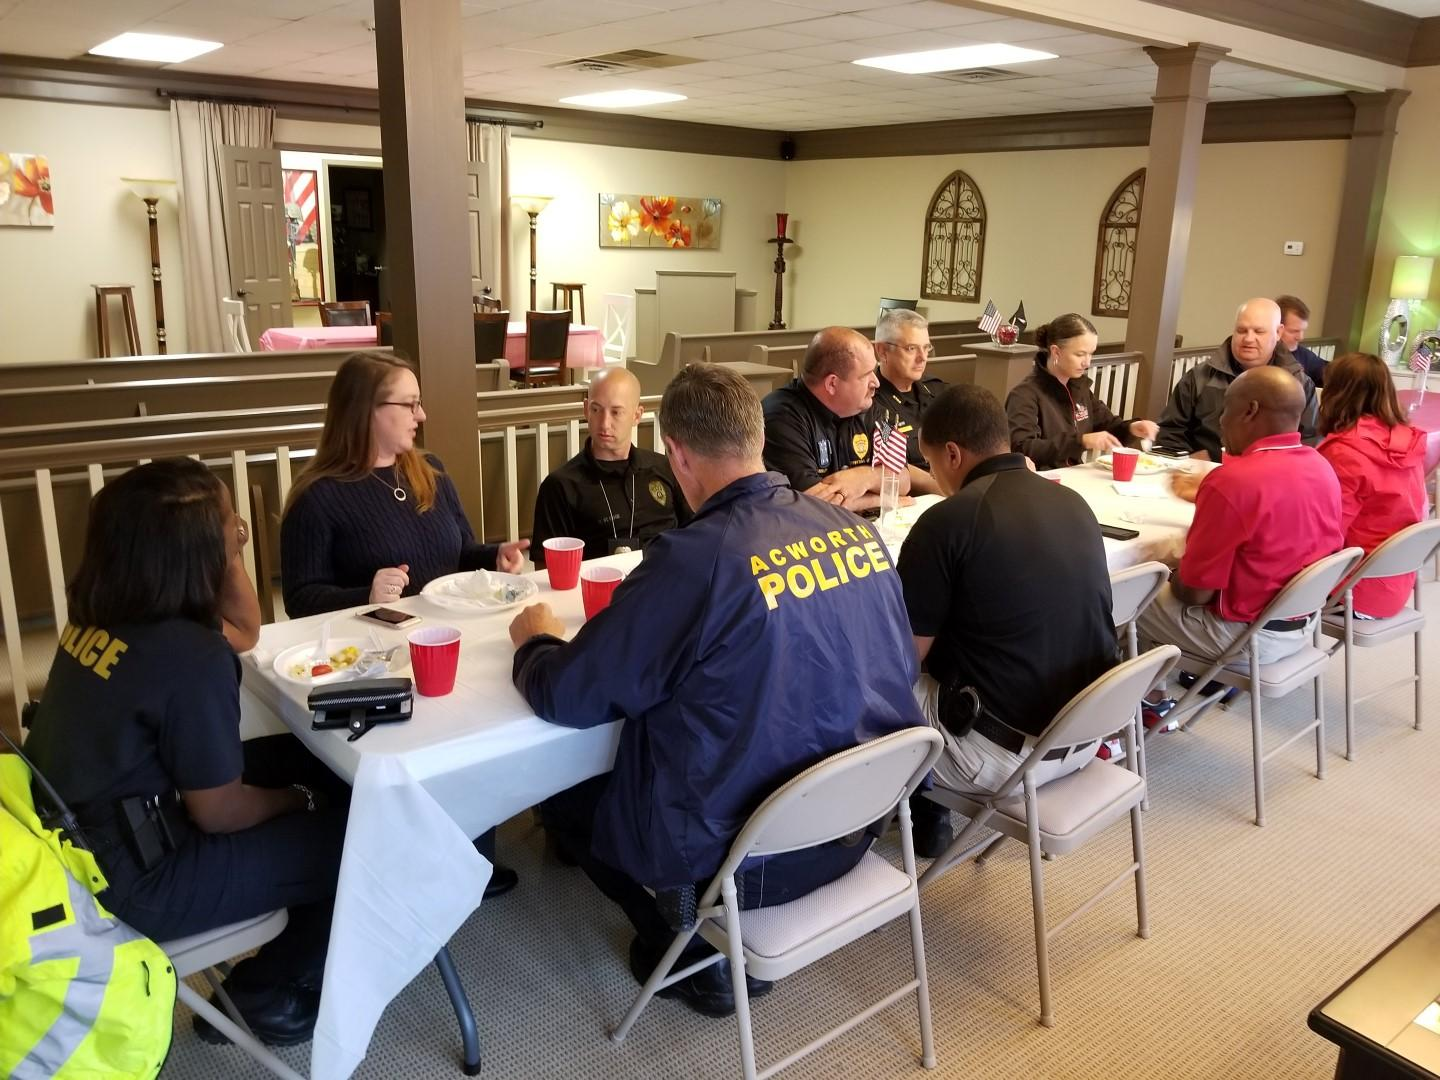 Our 3rd Annual First Responders Lunch for Local Police and Firefighters in Honor of 9/11